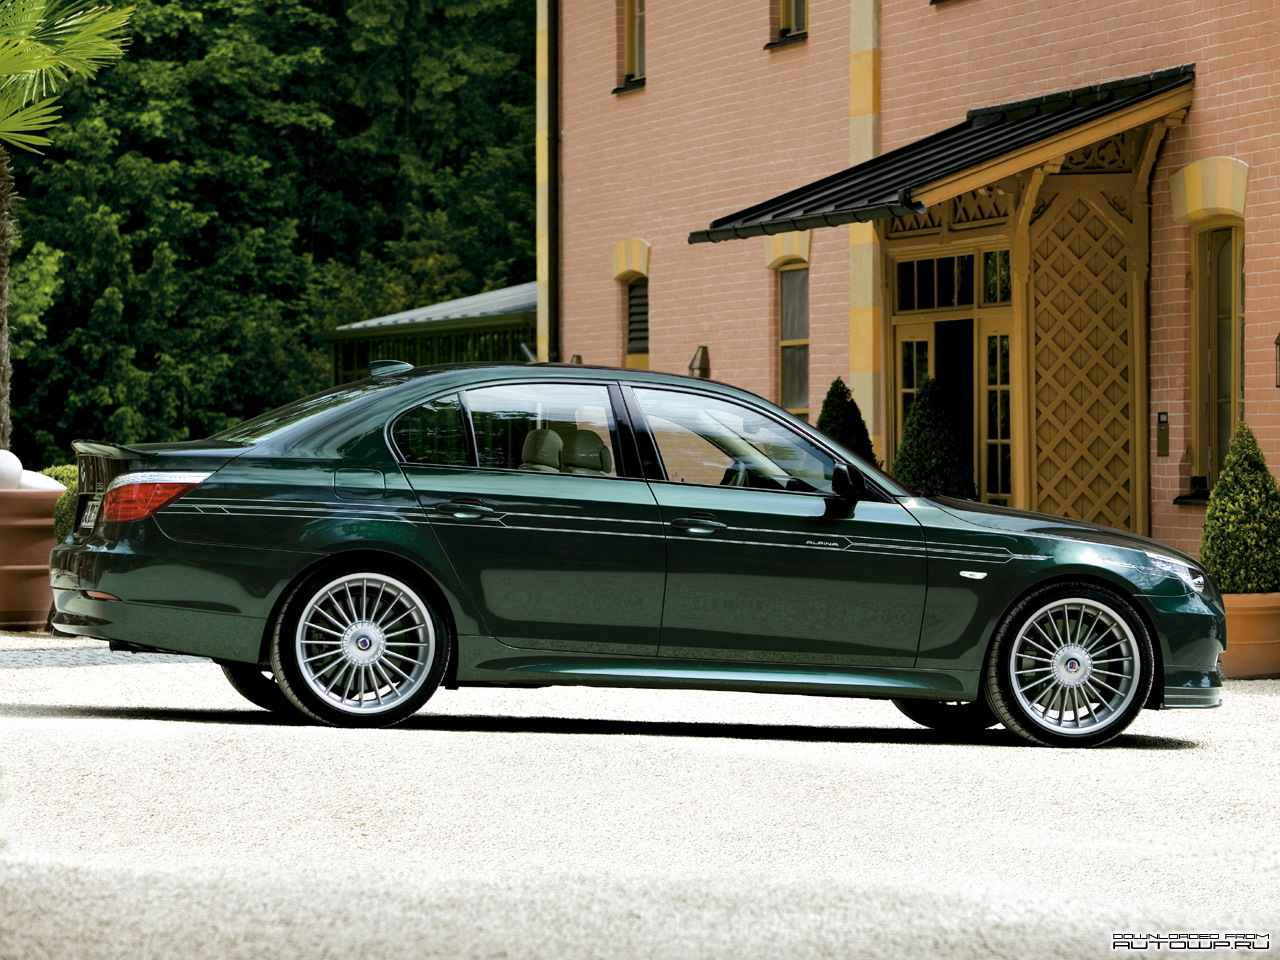 Alpina B5S Limousine (E60) photo 59342